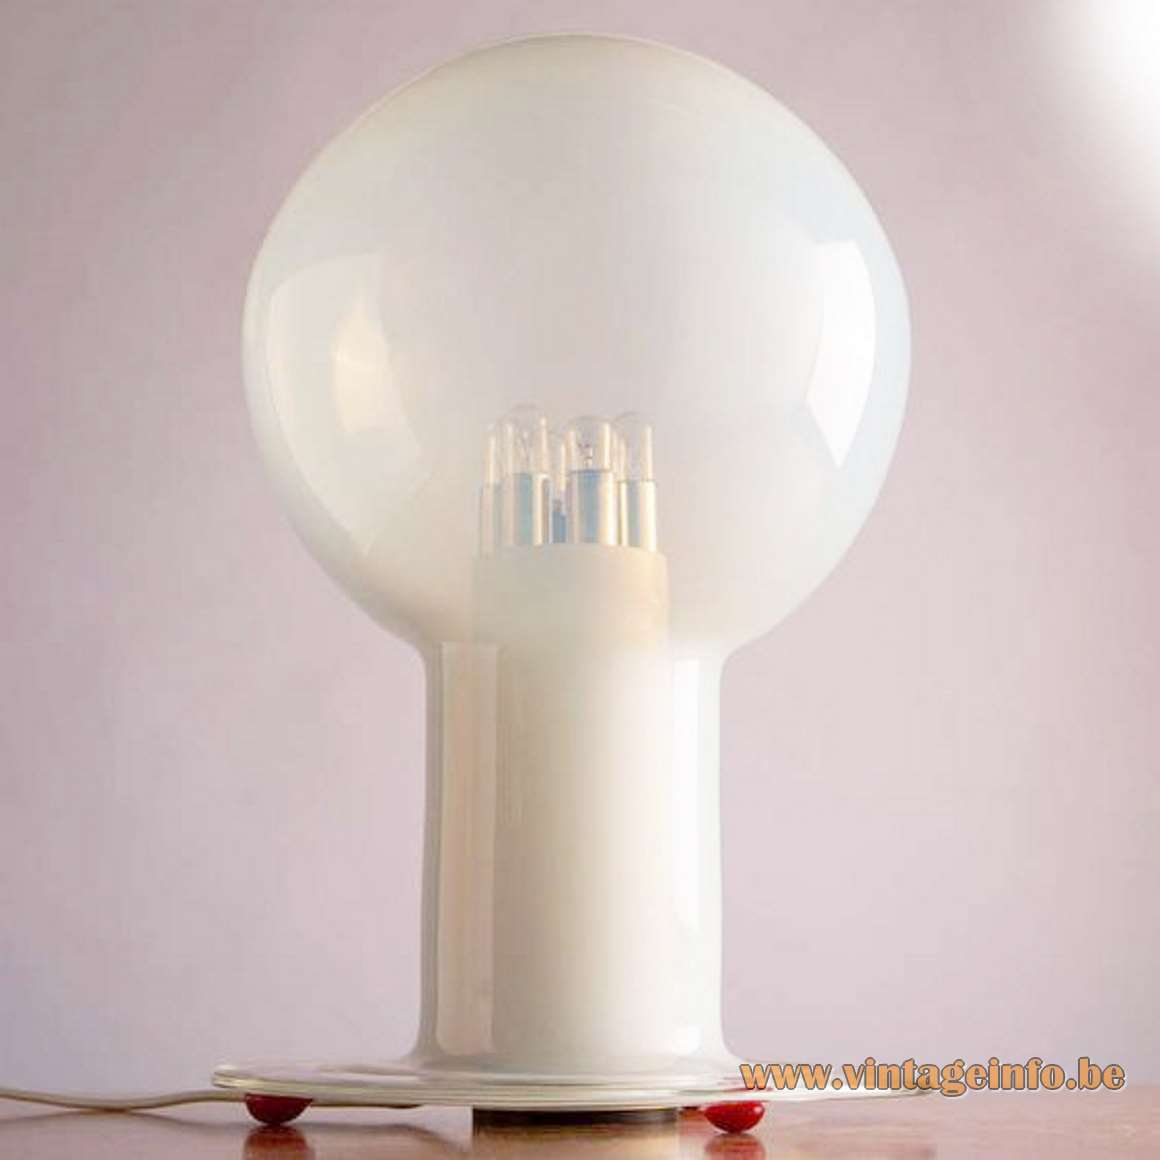 Renato Toso Nefele Table Lamp, Leucos, Murano, Italy, 1960s, hand blown milky crystal glass